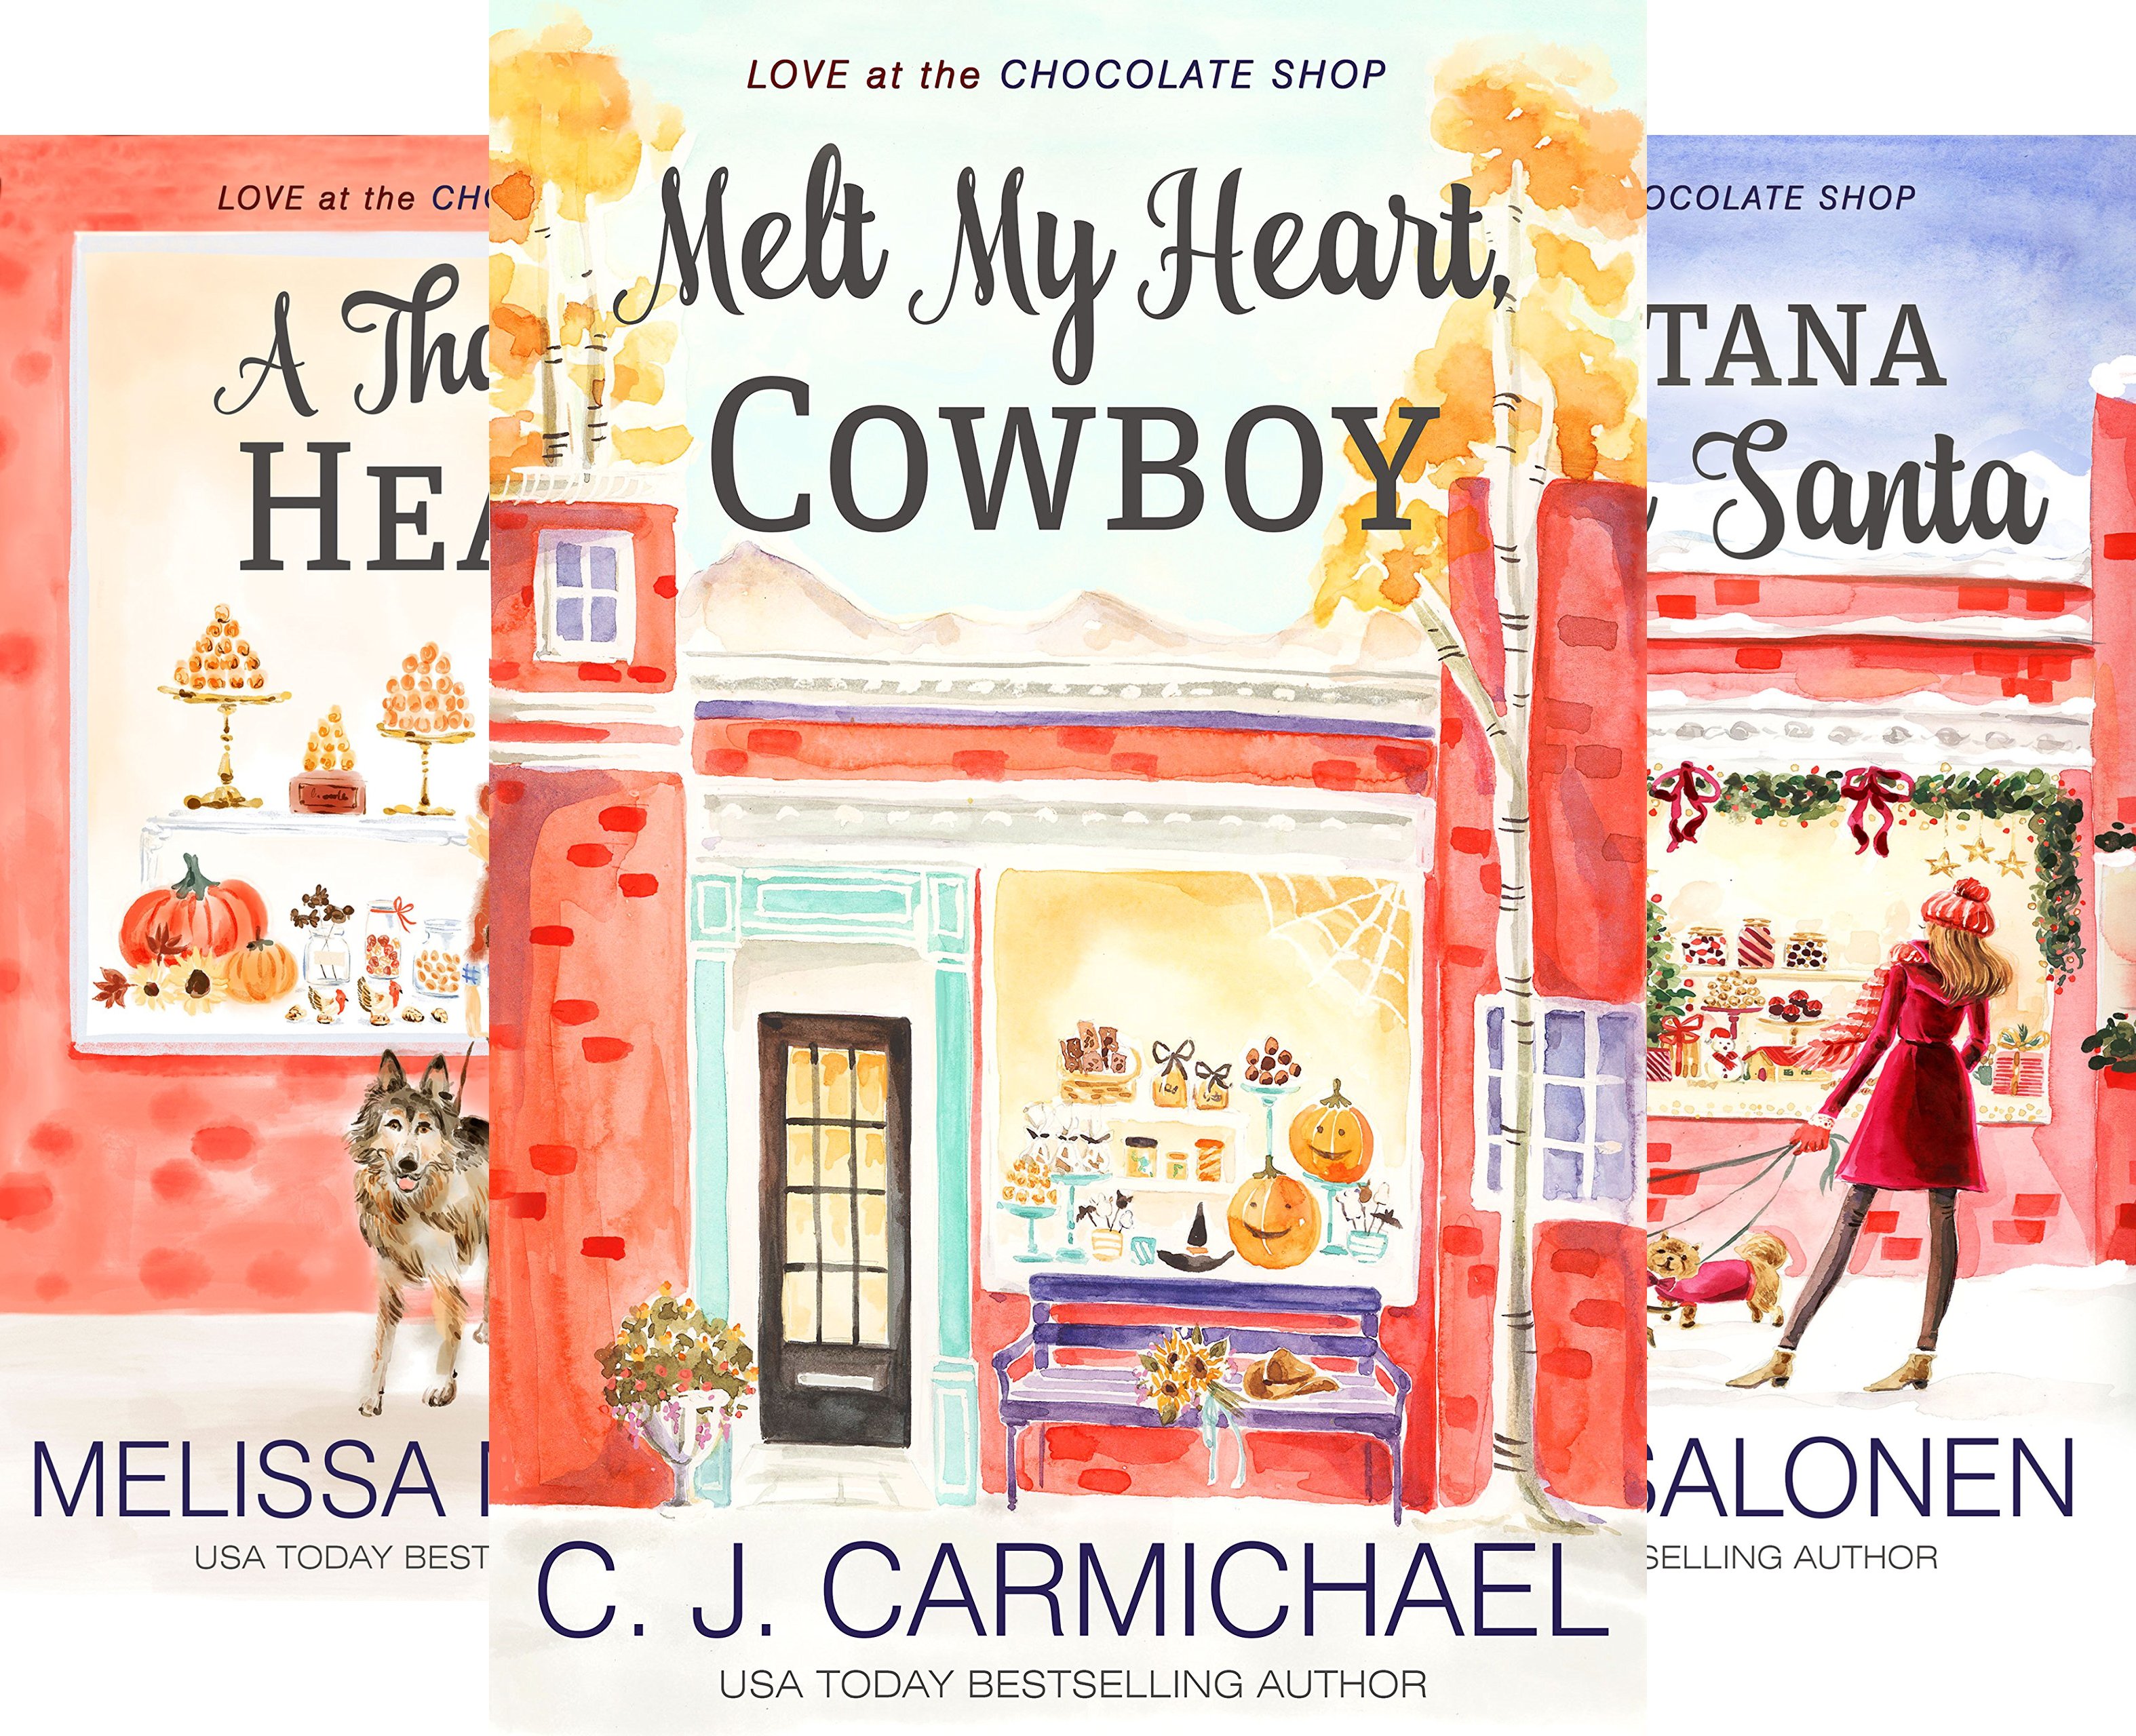 Love at the Chocolate Shop (12 Book Series)